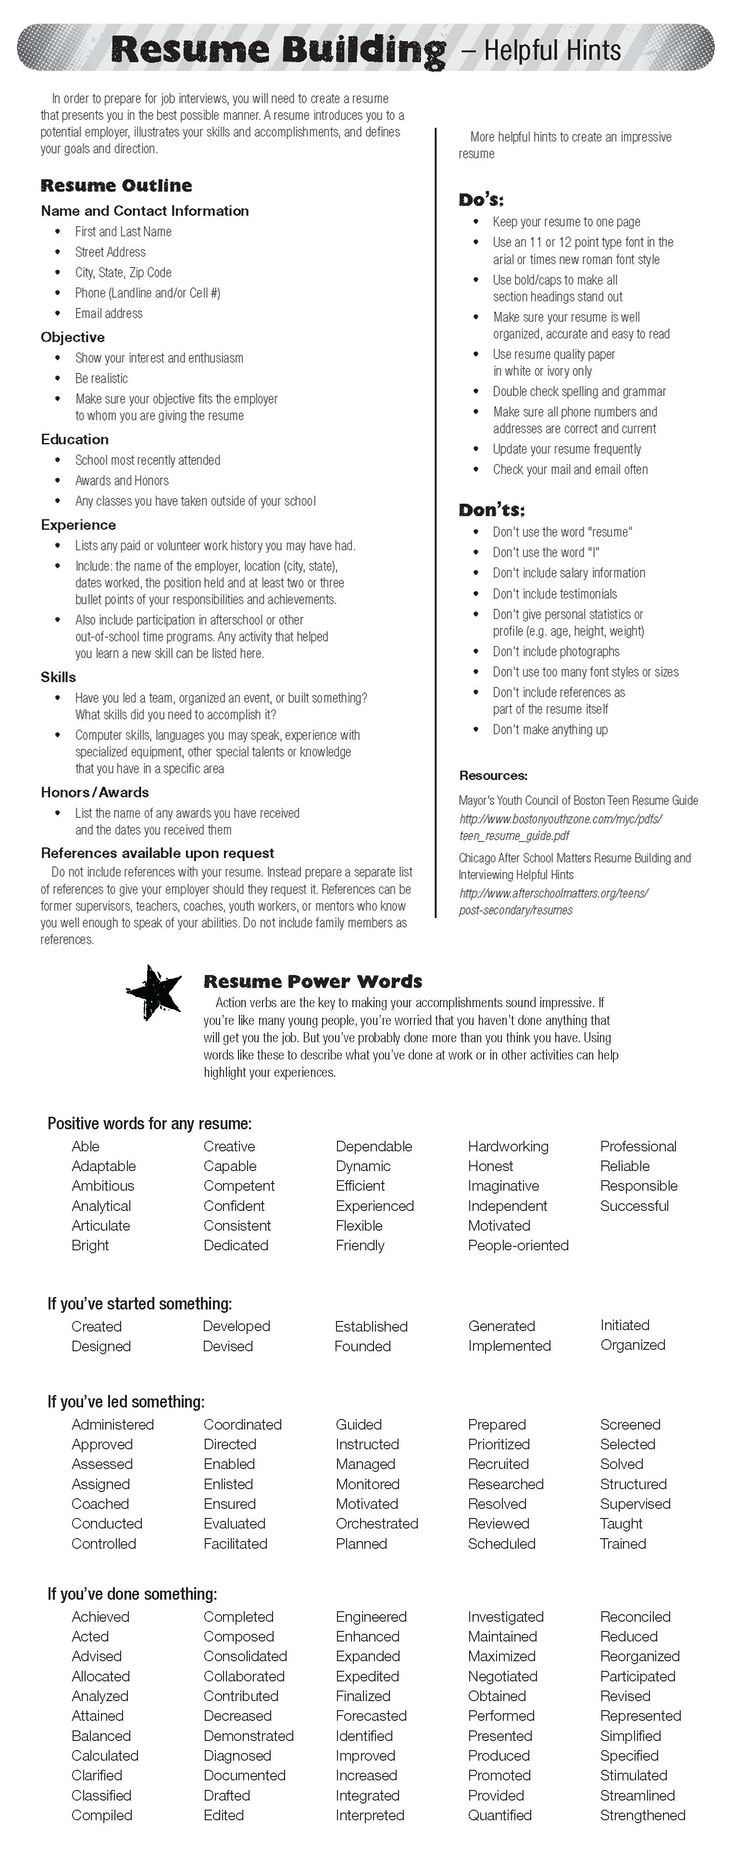 Opposenewapstandardsus  Ravishing  Ideas About Resume On Pinterest  Cv Format Resume Cv And  With Gorgeous  Ideas About Resume On Pinterest  Cv Format Resume Cv And Resume Templates With Astonishing Security Guard Resume Also Font Size For Resume In Addition Operations Manager Resume And Good Skills For Resume As Well As Templates For Resumes Additionally Pongo Resume From Pinterestcom With Opposenewapstandardsus  Gorgeous  Ideas About Resume On Pinterest  Cv Format Resume Cv And  With Astonishing  Ideas About Resume On Pinterest  Cv Format Resume Cv And Resume Templates And Ravishing Security Guard Resume Also Font Size For Resume In Addition Operations Manager Resume From Pinterestcom